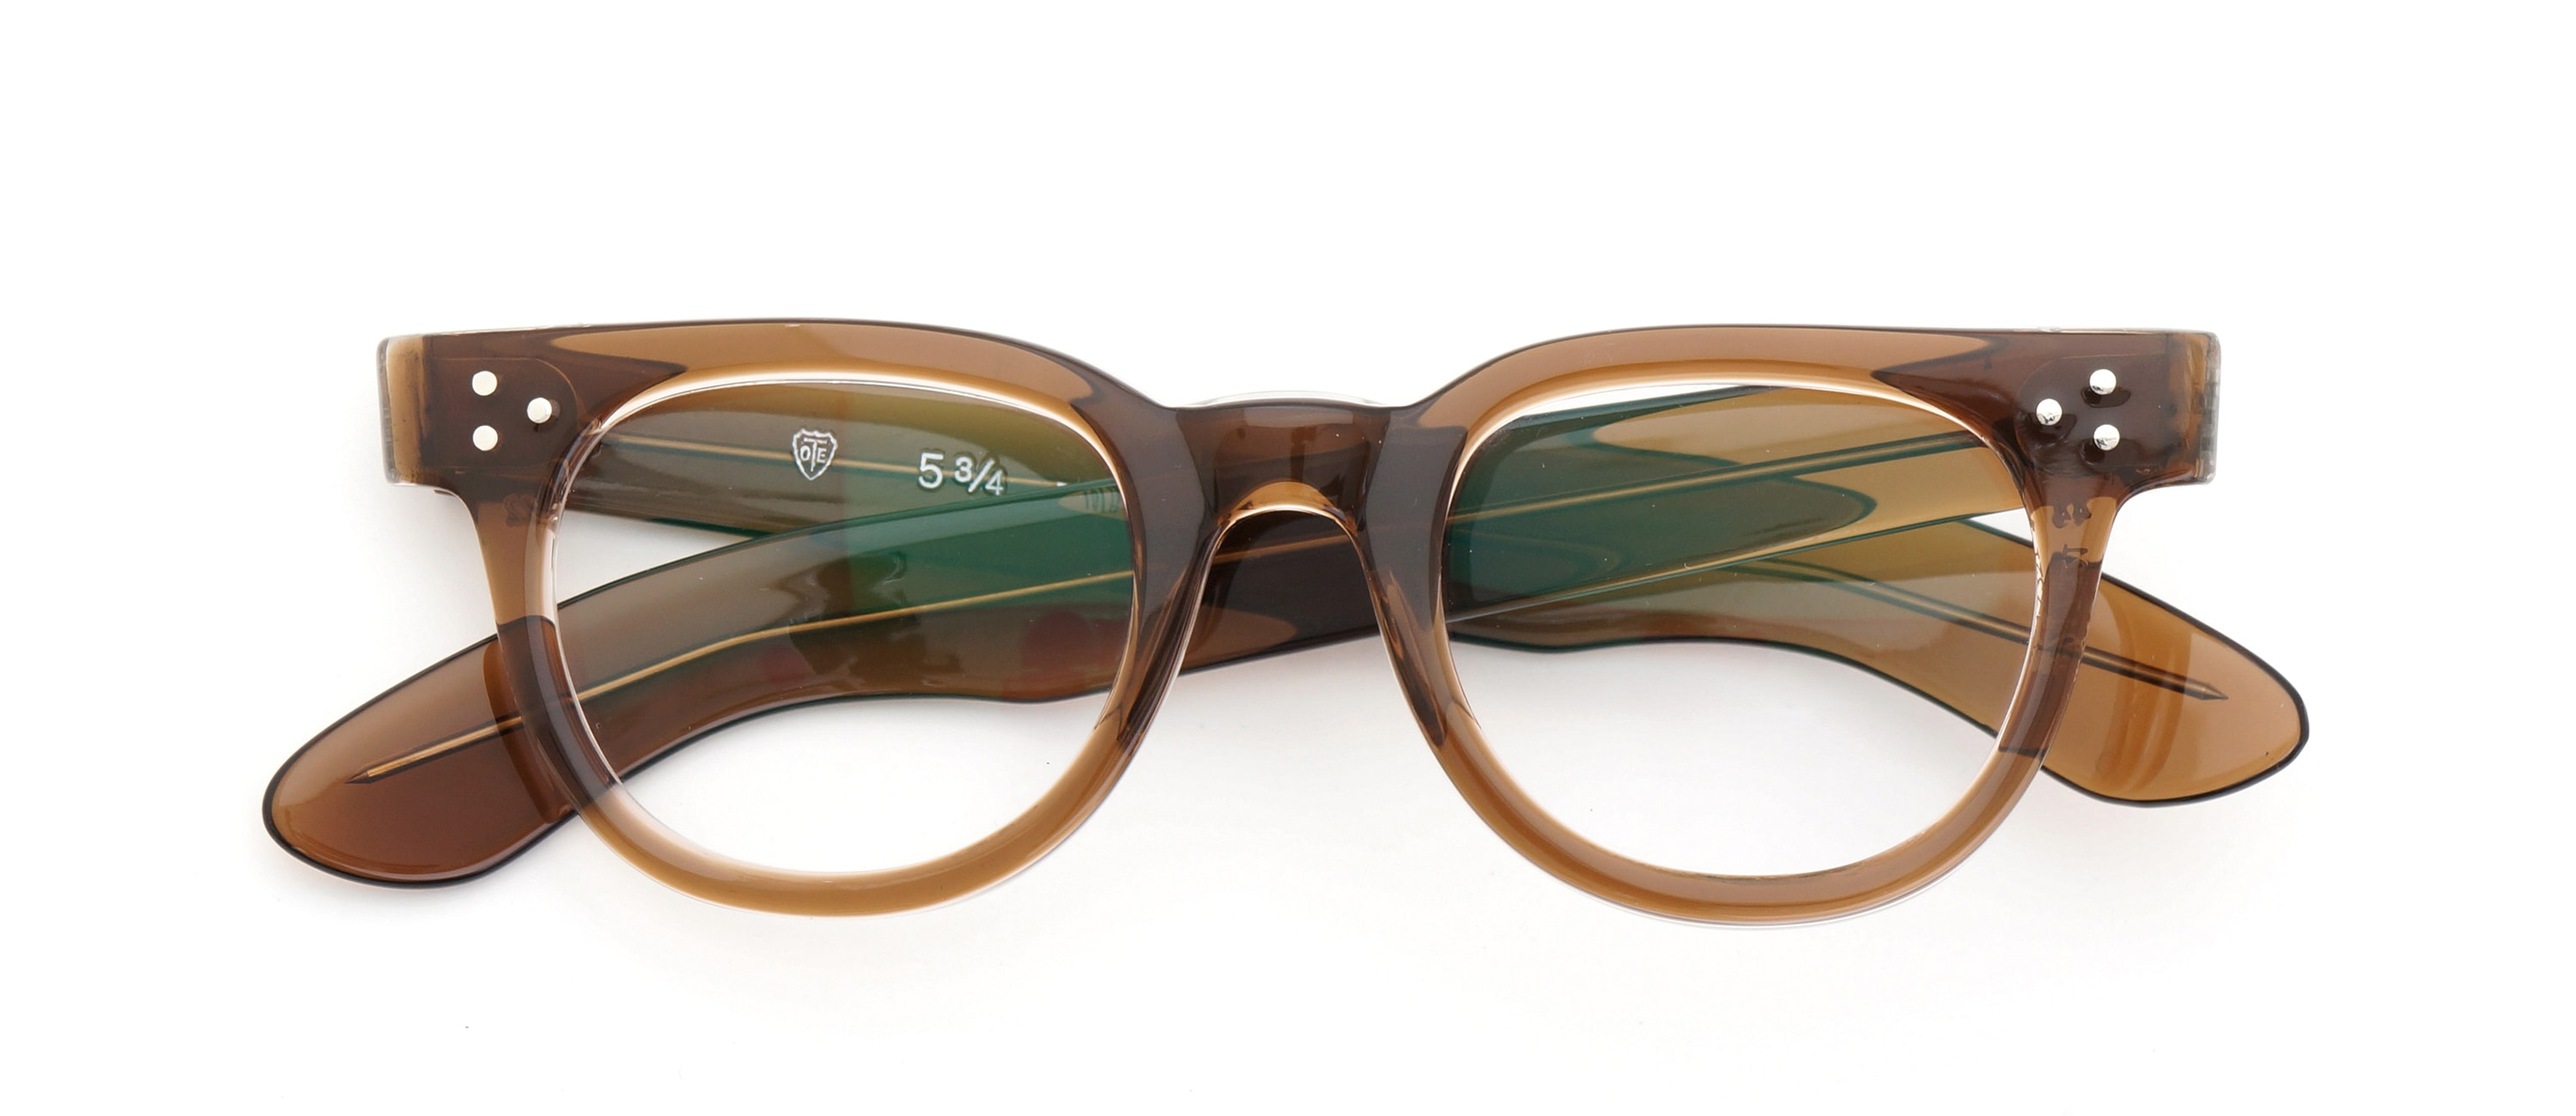 The Spectacle メガネ 1950s-70s TART OPTICAL FDR (FRAME USA) BROWN 44-22 イメージ6